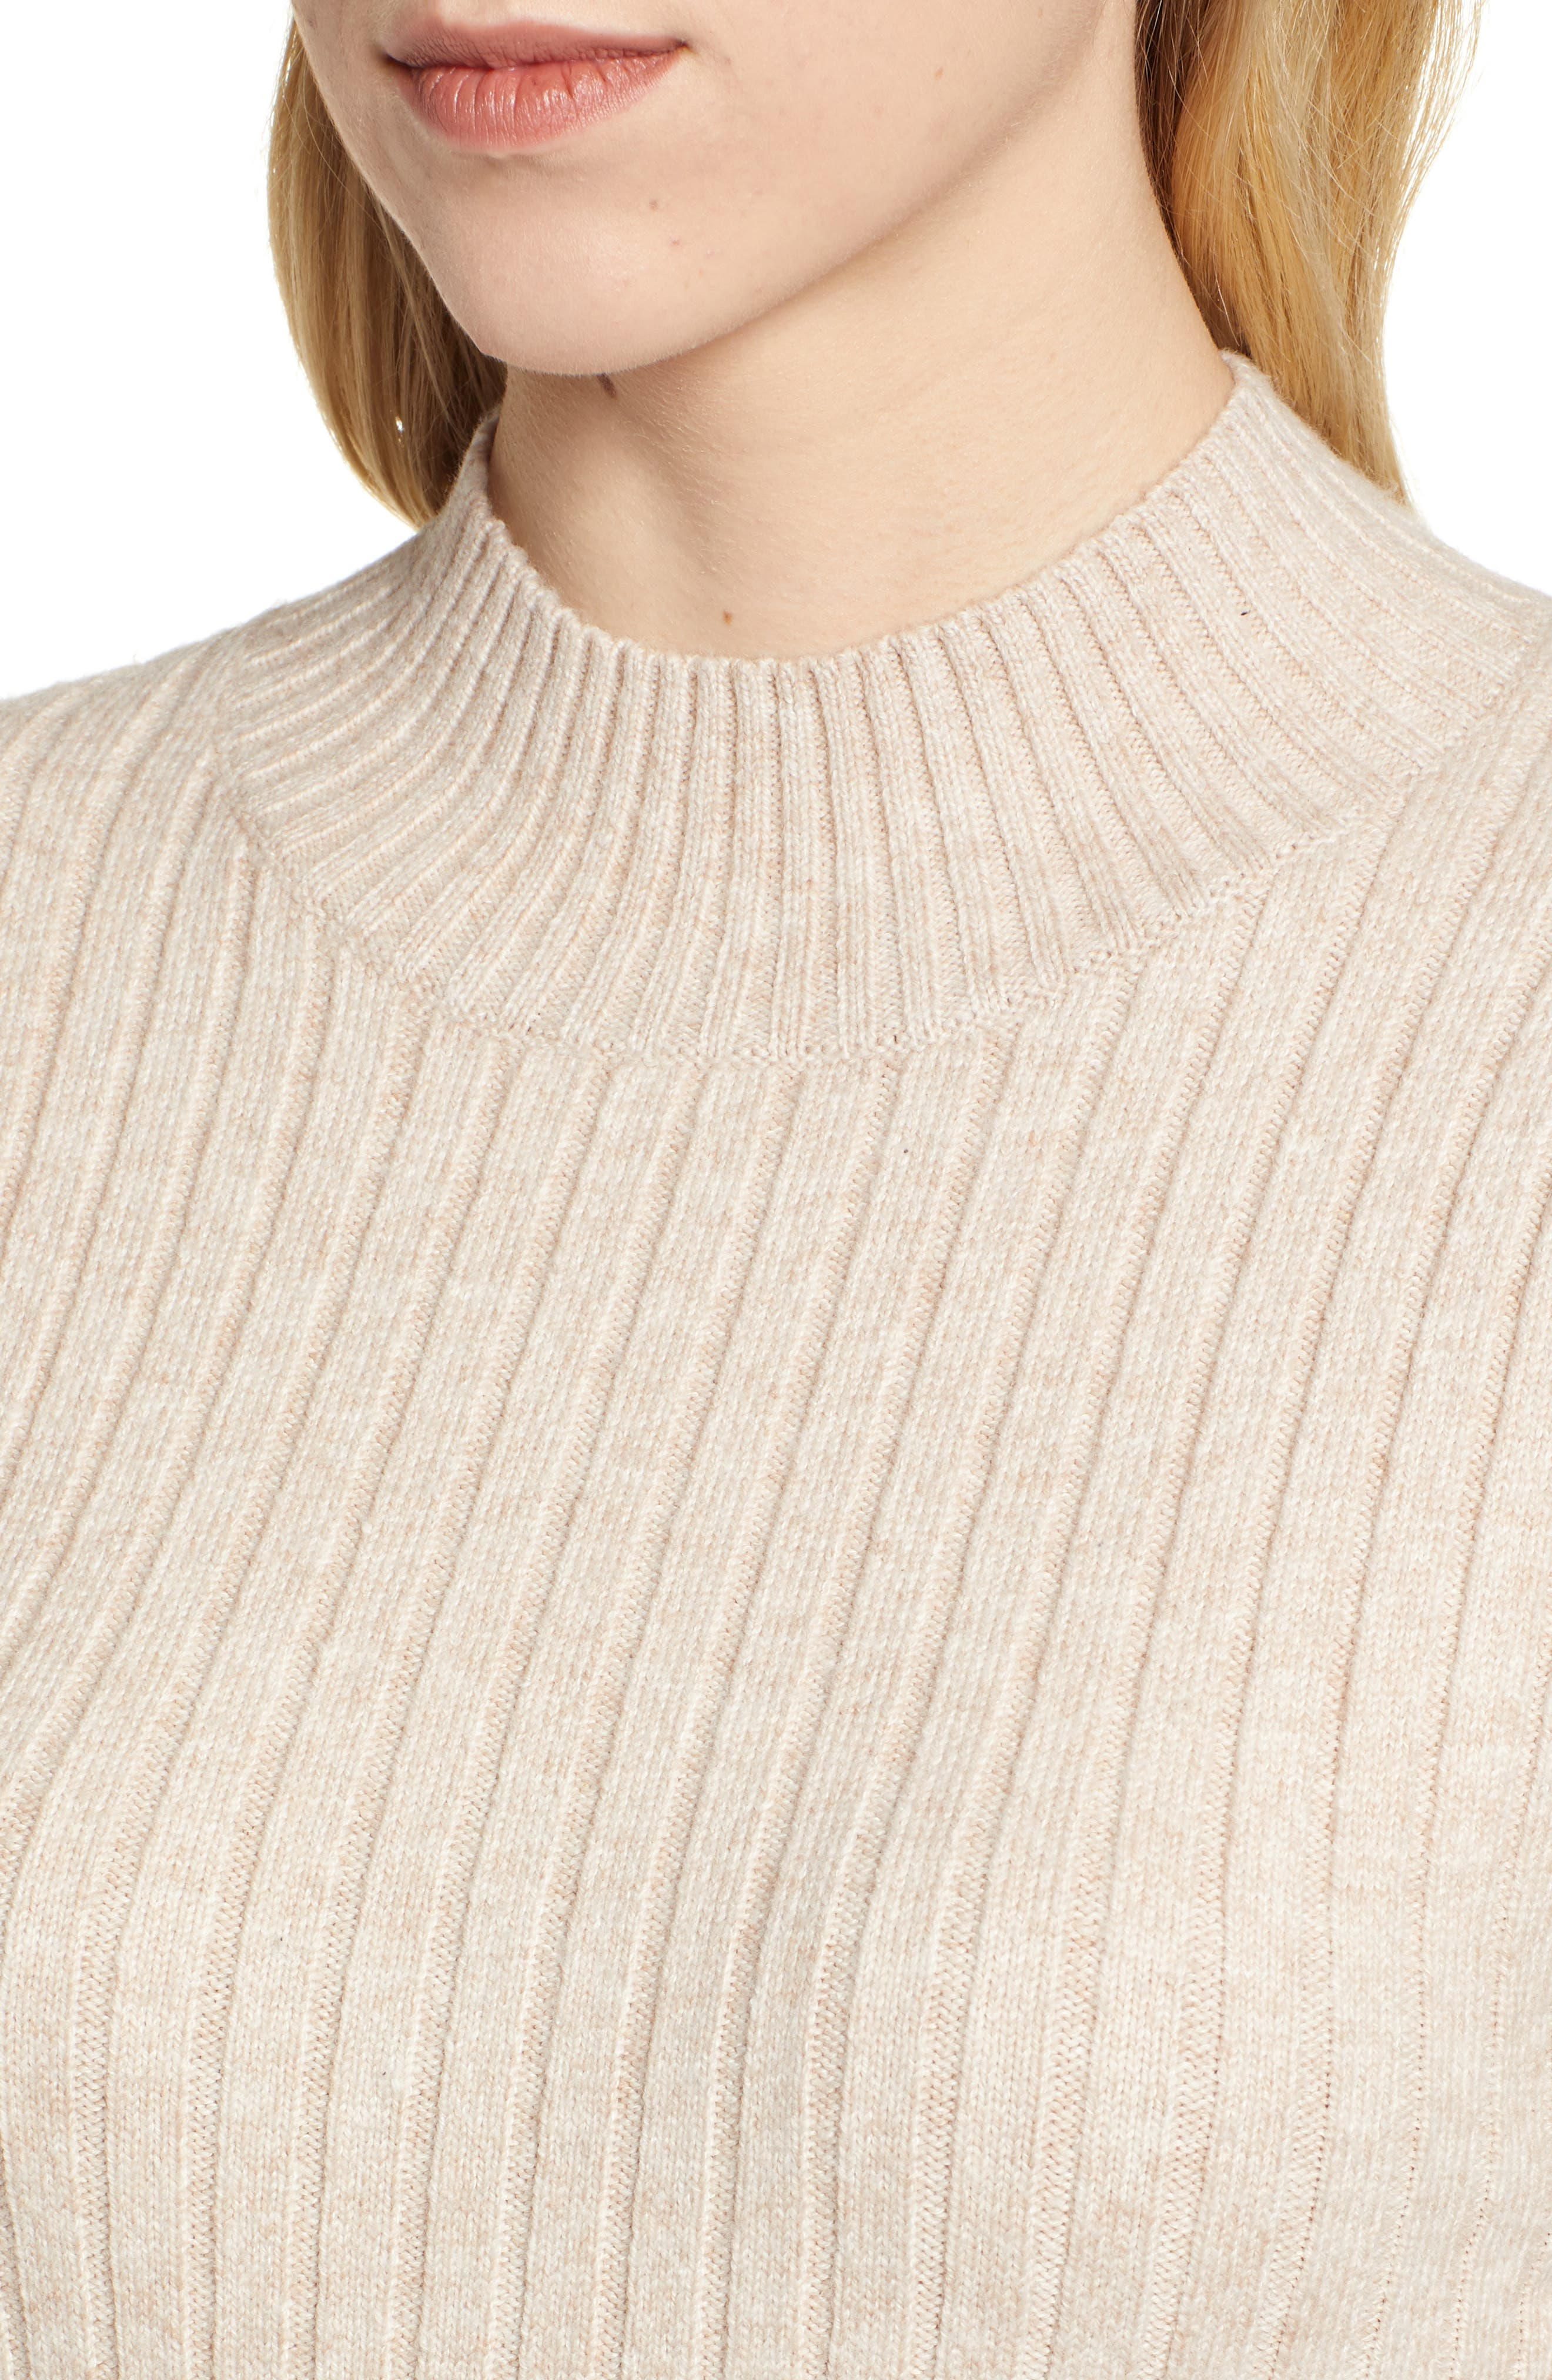 Mixed Rib Sweater,                             Alternate thumbnail 4, color,                             WARM OATMEAL HEATHER